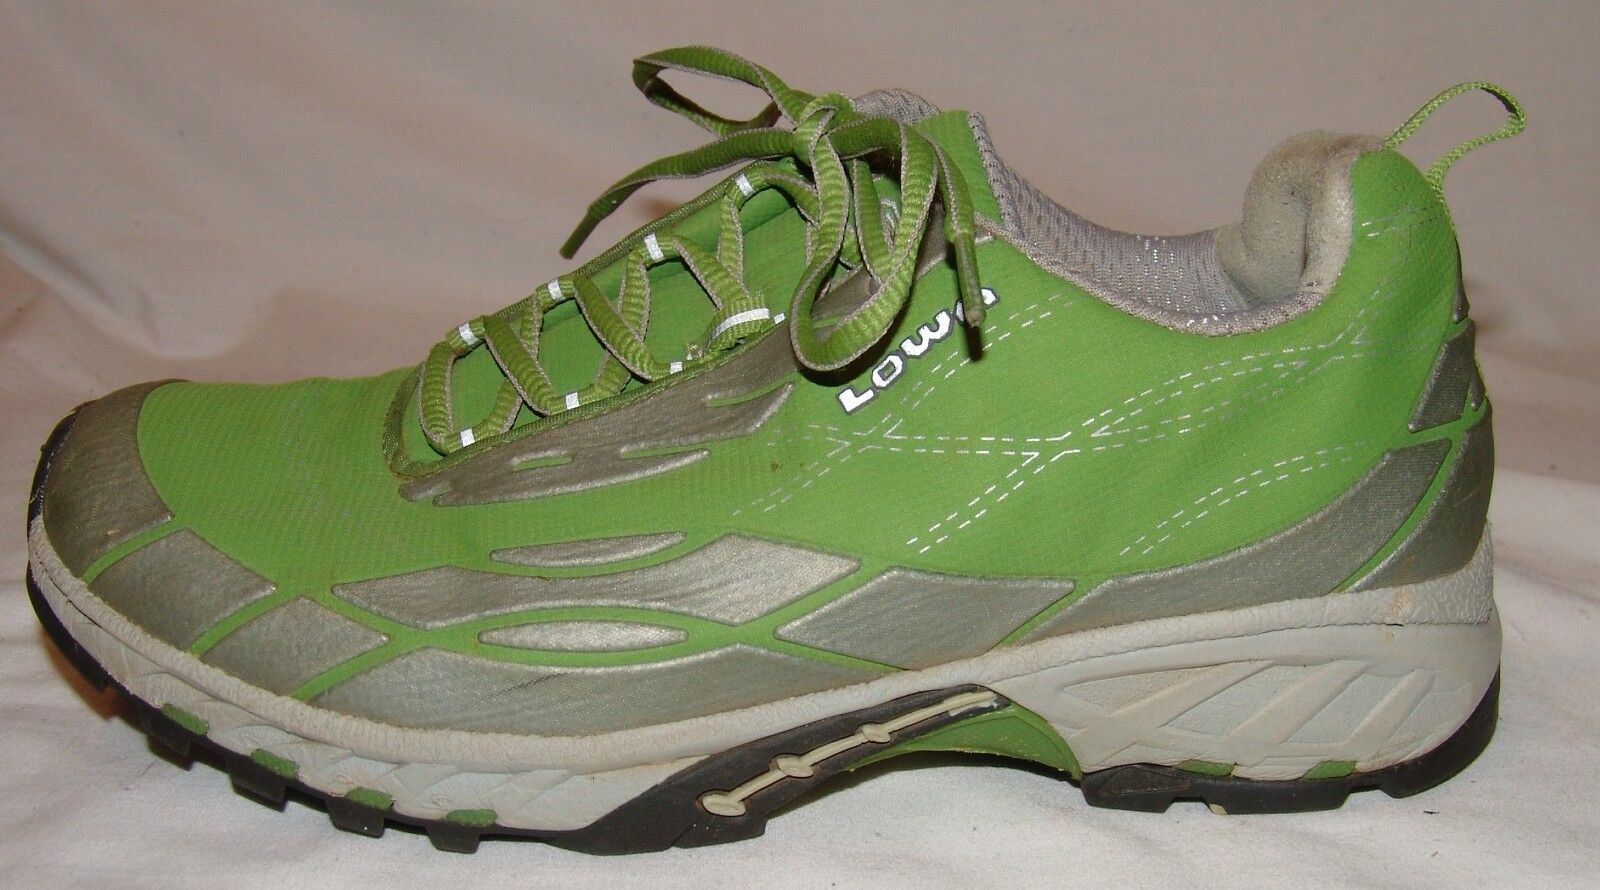 Lowa Lime Green Gray Sneakers Athletic Schuhes Damenschuhe 7.5 Trail Running Celeste Lo